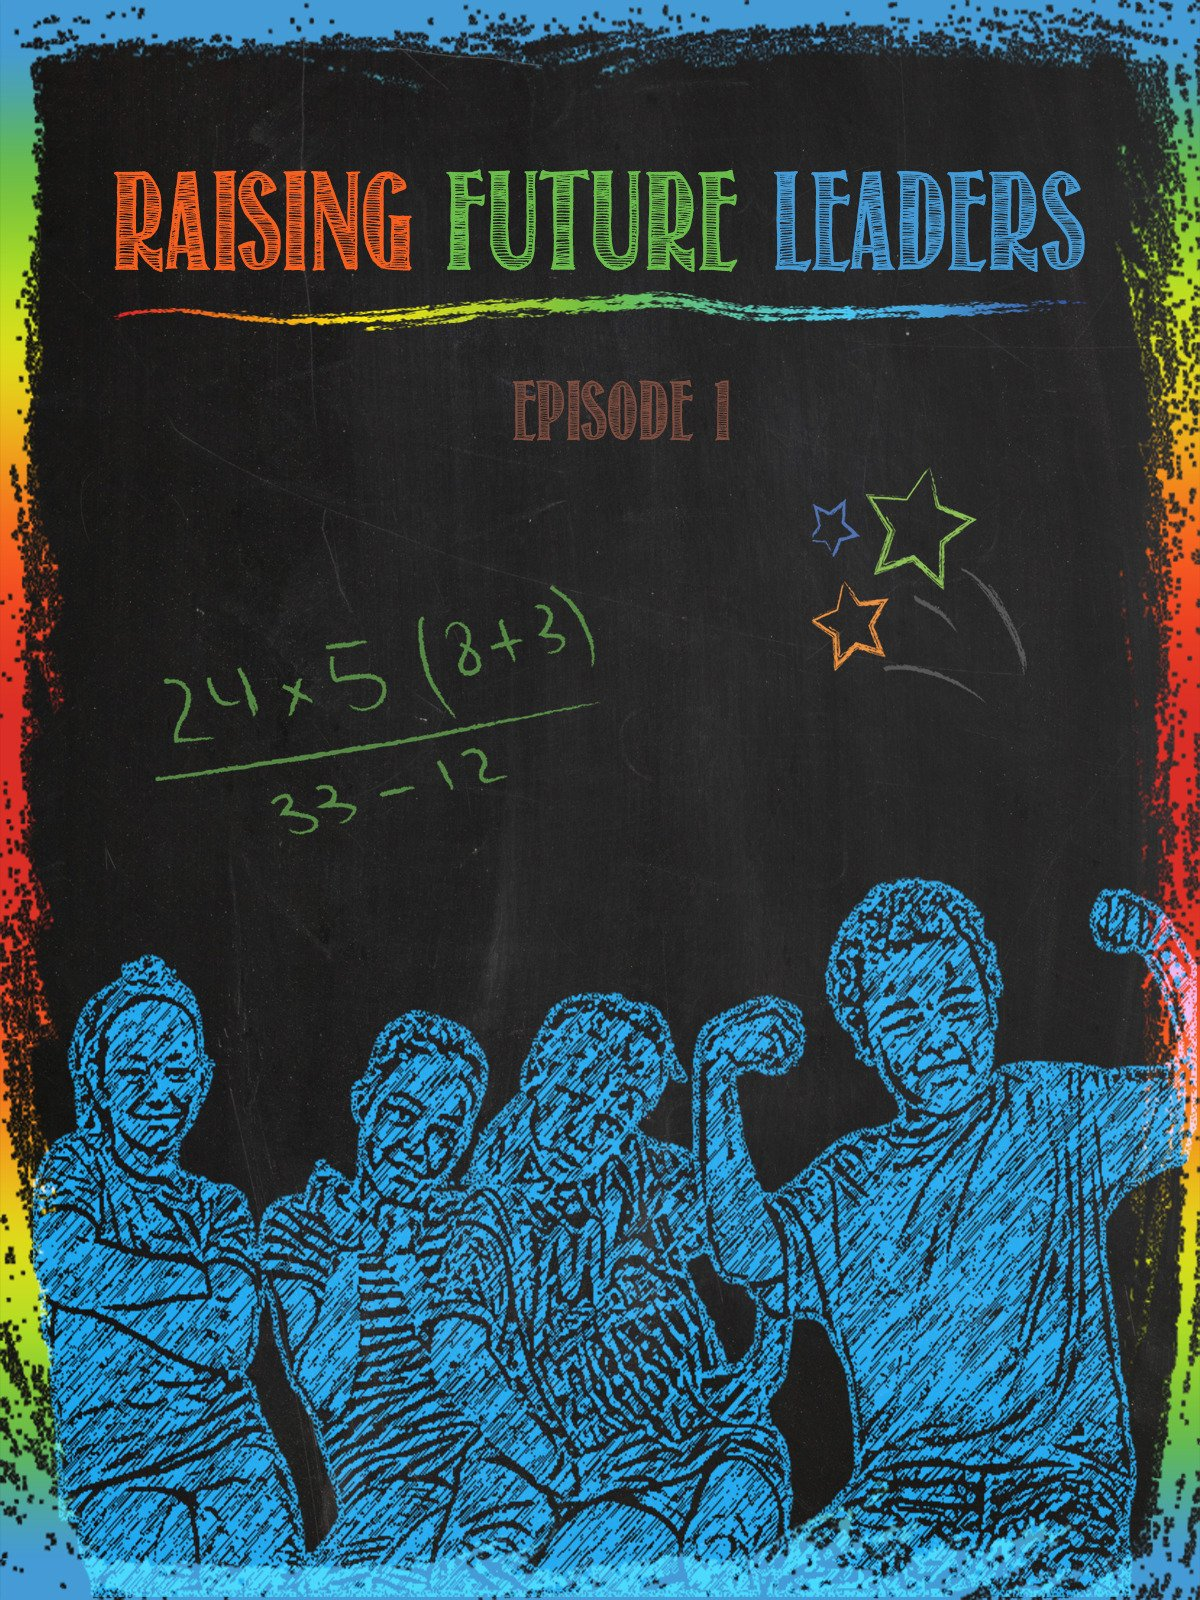 Raising Future Leaders Episode 1